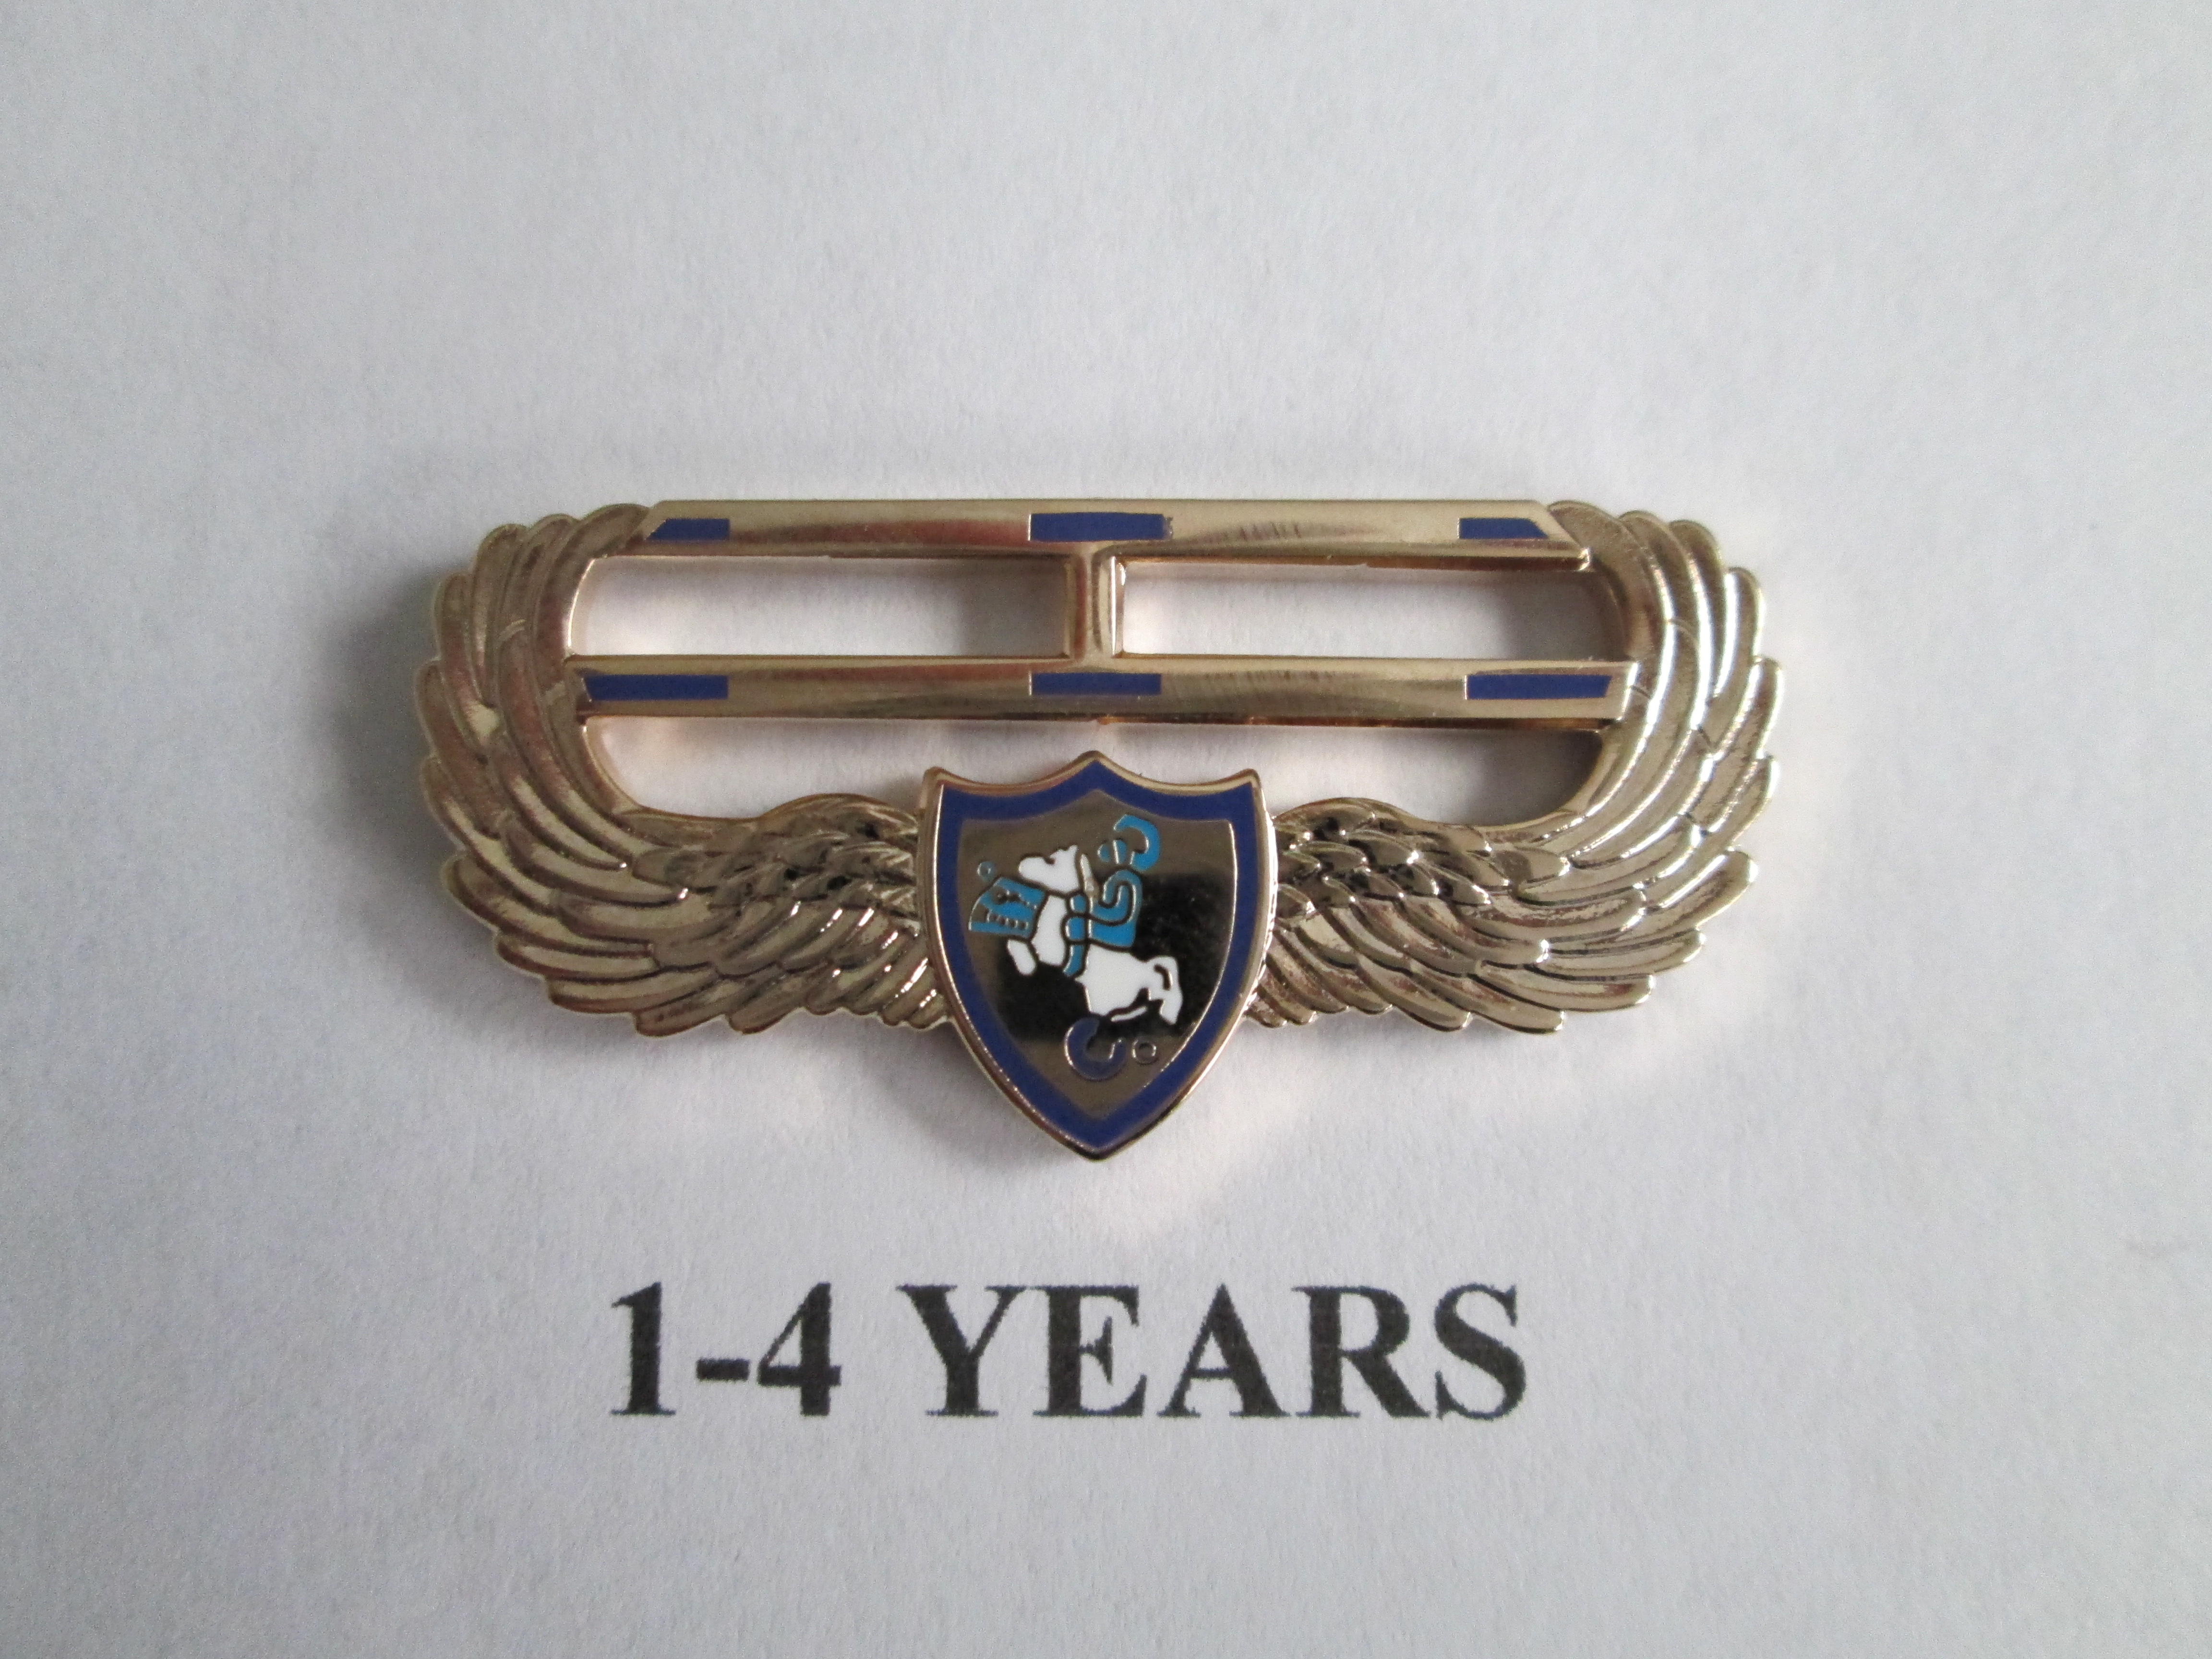 chapter_pins__1__4_years_of_service